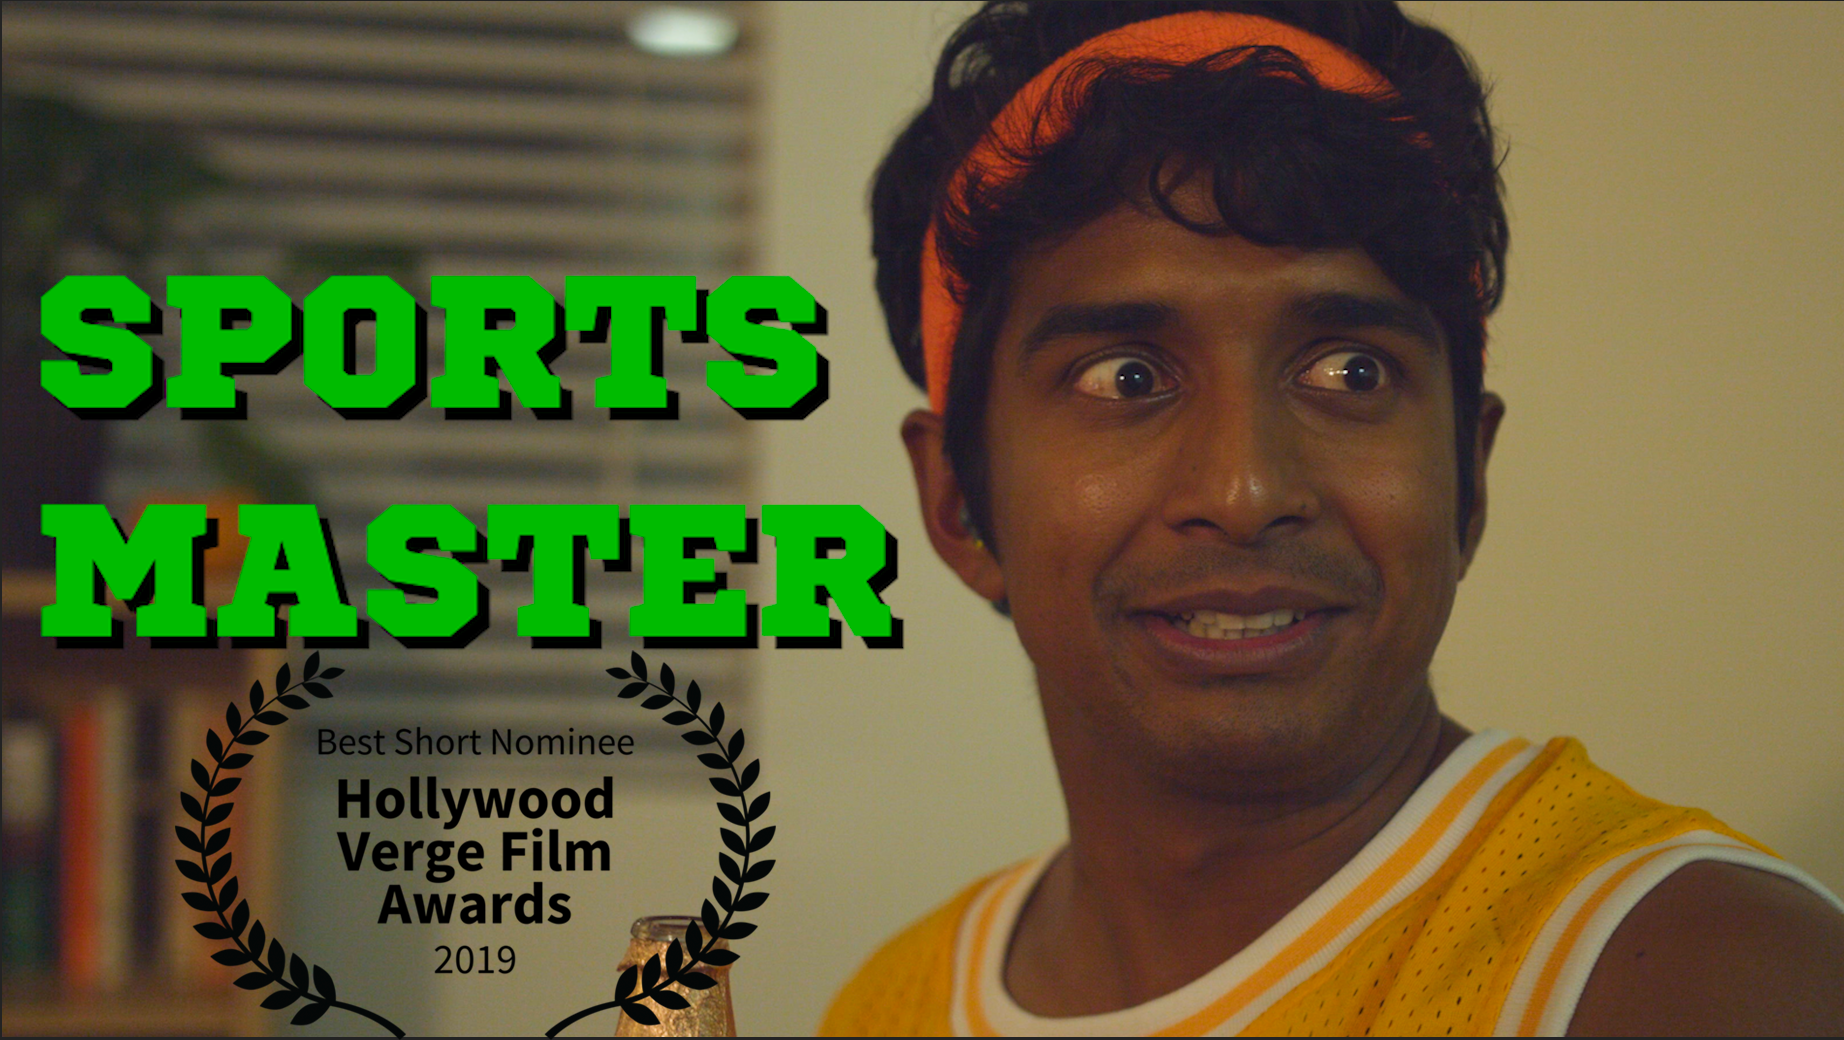 """""""Sports Master"""" (5 min) - I wrote this Headcase short about a guy so determined to convince his brother-in-law that he's into sports that he hired a team of spies to help feed him trivia. It was directed by Lauren Gilbert, stars Brandon Raman, Chris Sanders, Johanna Middleton, and Vaughn Harper. It was also nominated for Best Short at the 2019 Hollywood Verge Film Awards. Check it out HERE!"""